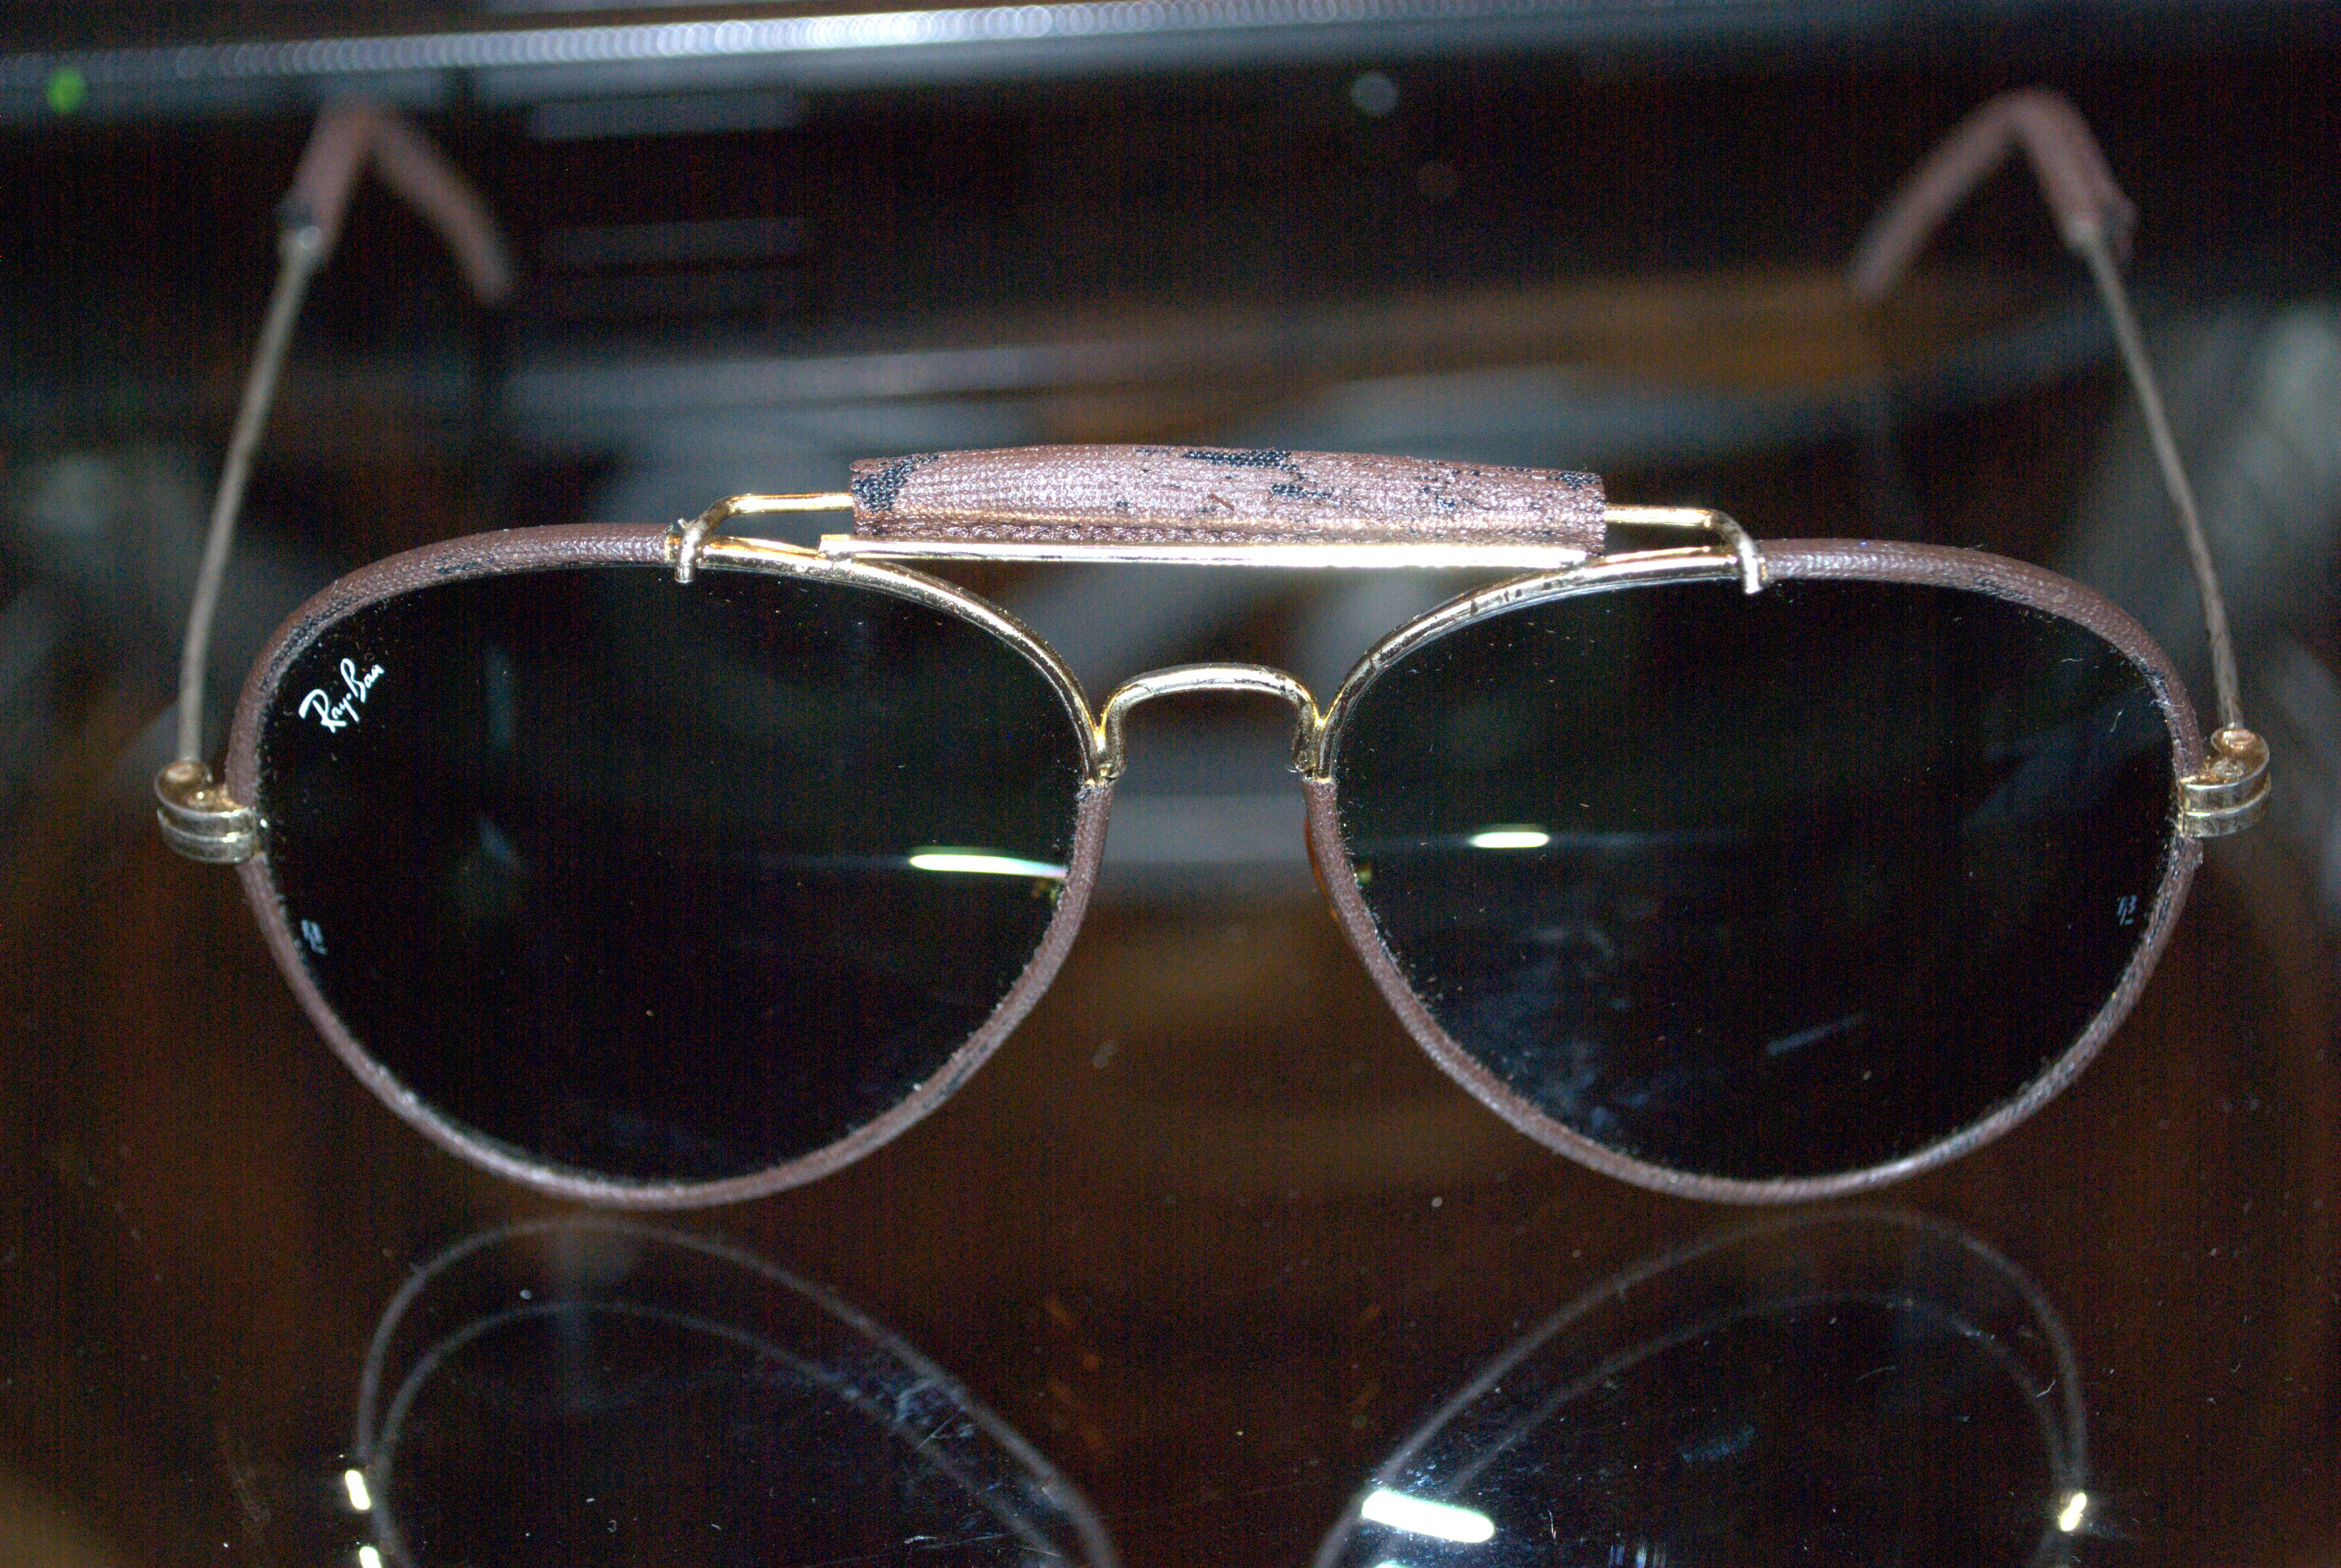 444f33700b75 I just recently picked up a pair of vintage Ray Bans and wanted to get an  idea as to the exact age and perhaps the value of them. Pictures included.